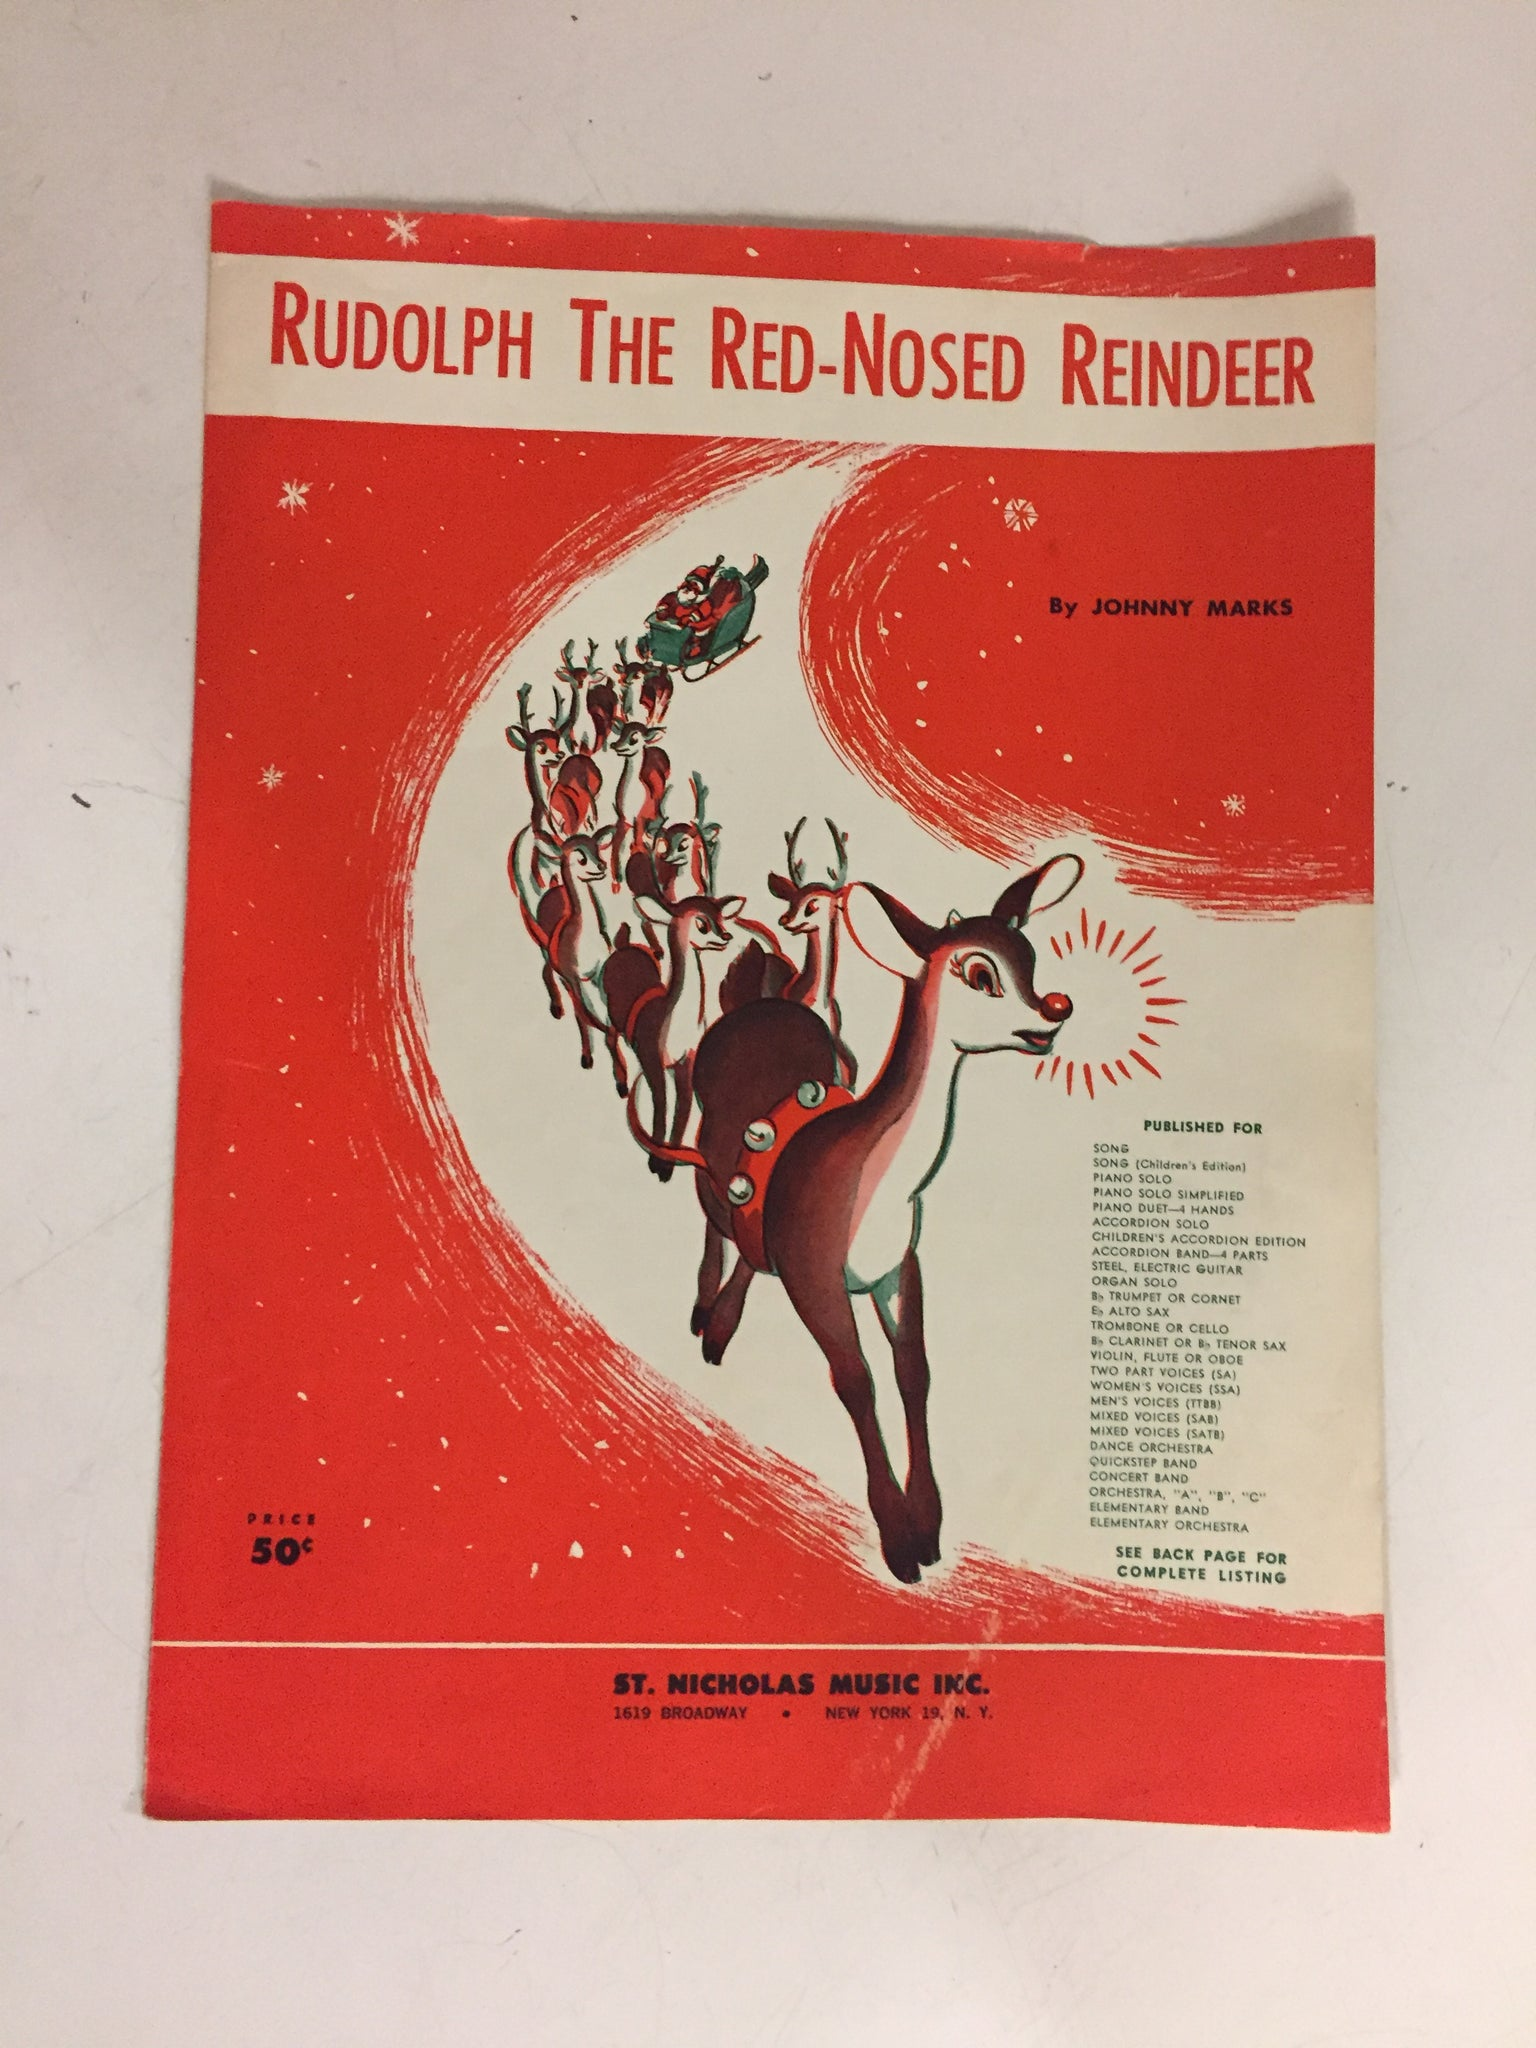 Vintage 1949 St Nicholas Music Rudolph the Red-Nosed Reindeer Sheet Music